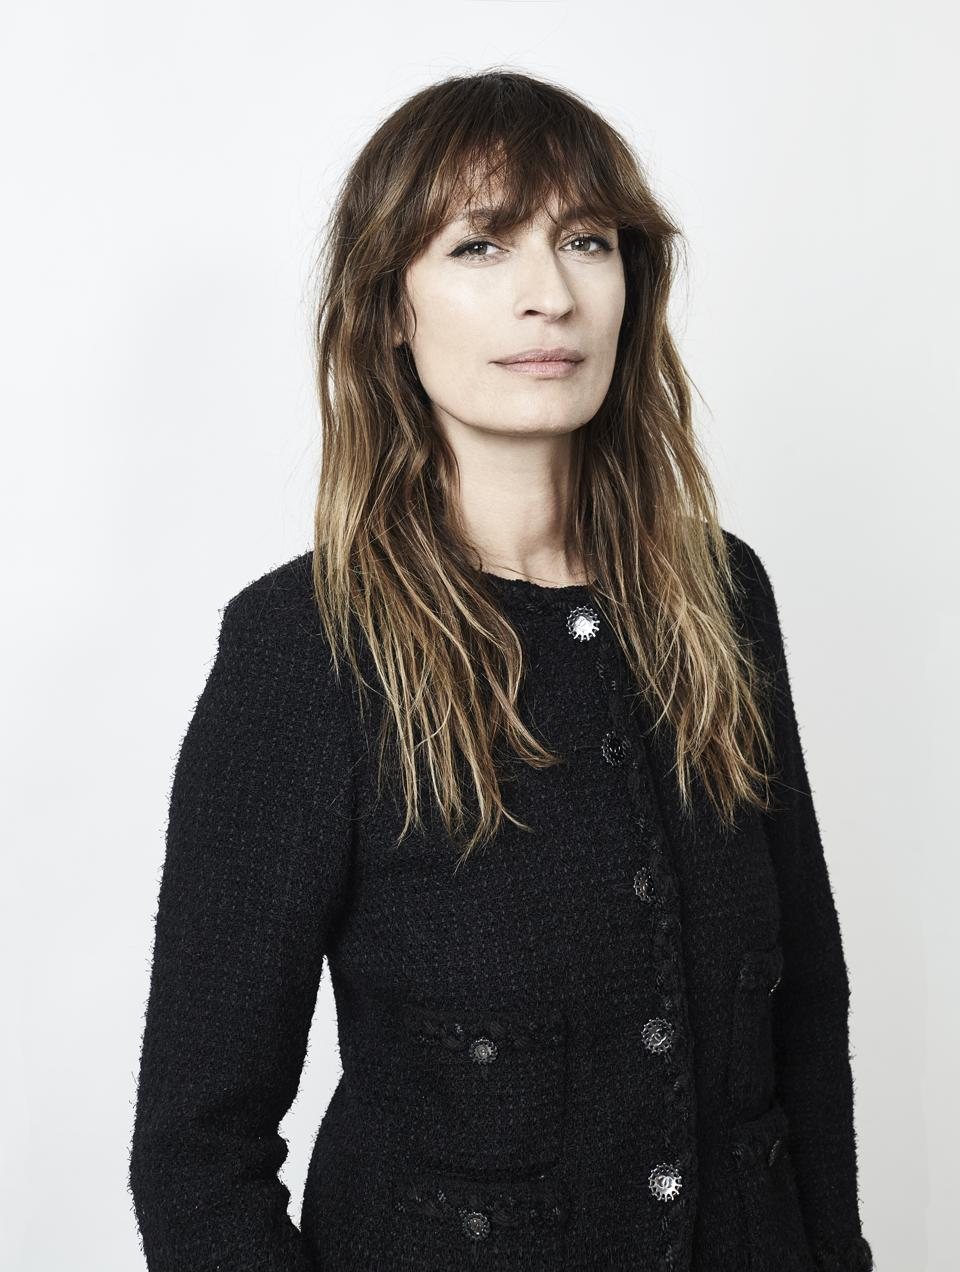 Want To Know Latest News Of Parisian Chanel Ambassador Caroline De Maigret?